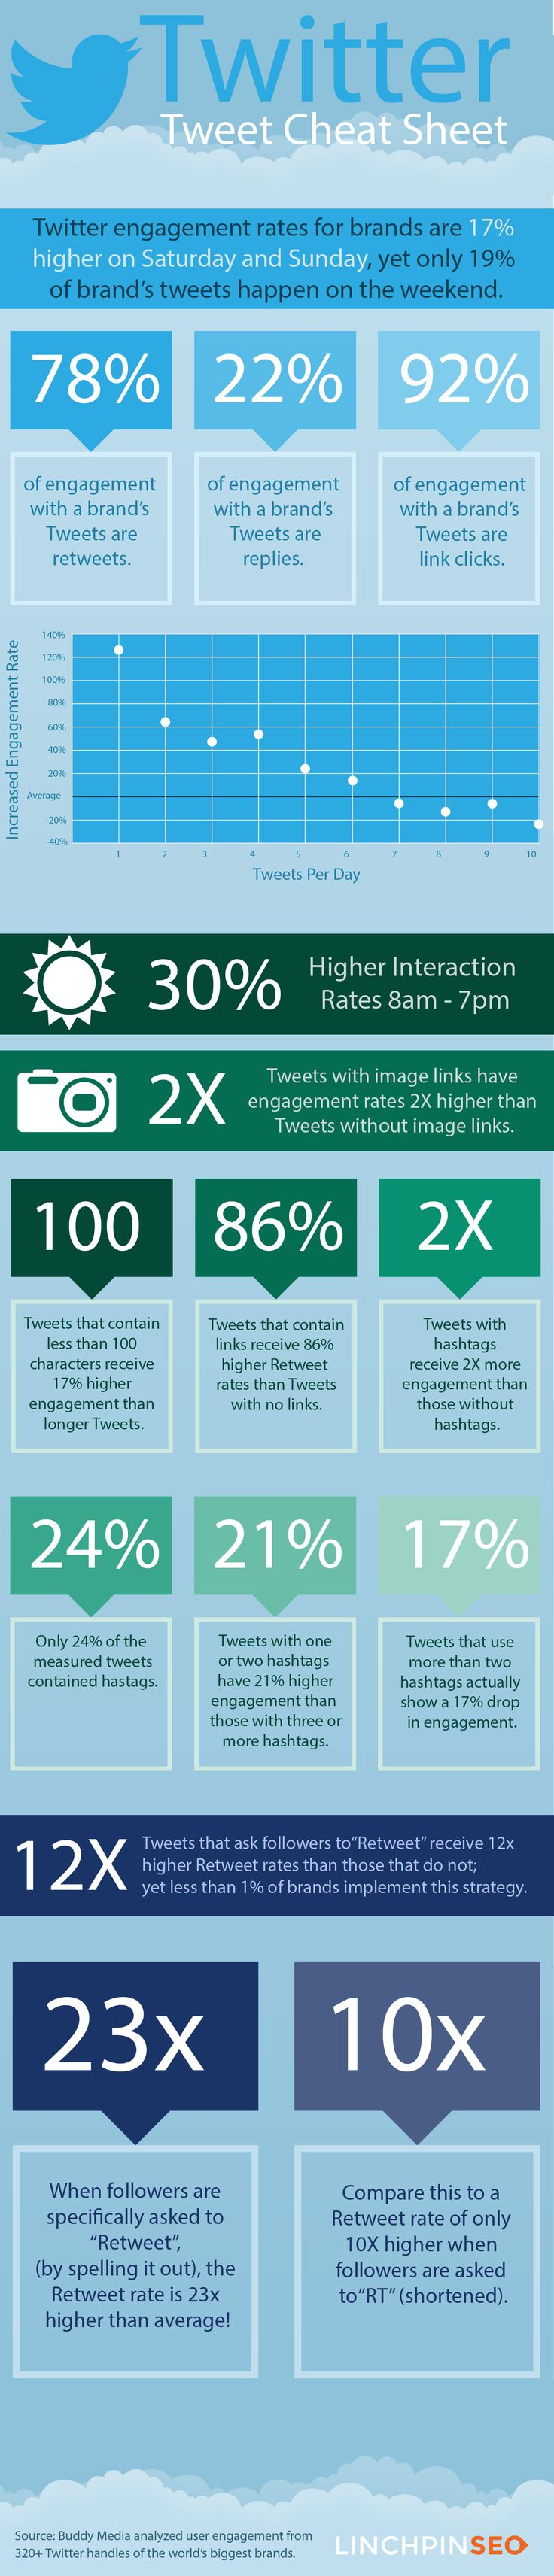 Linchpin SEO: Twitter Tweet Cheat Sheet To Increase Engagement by Bill Ross